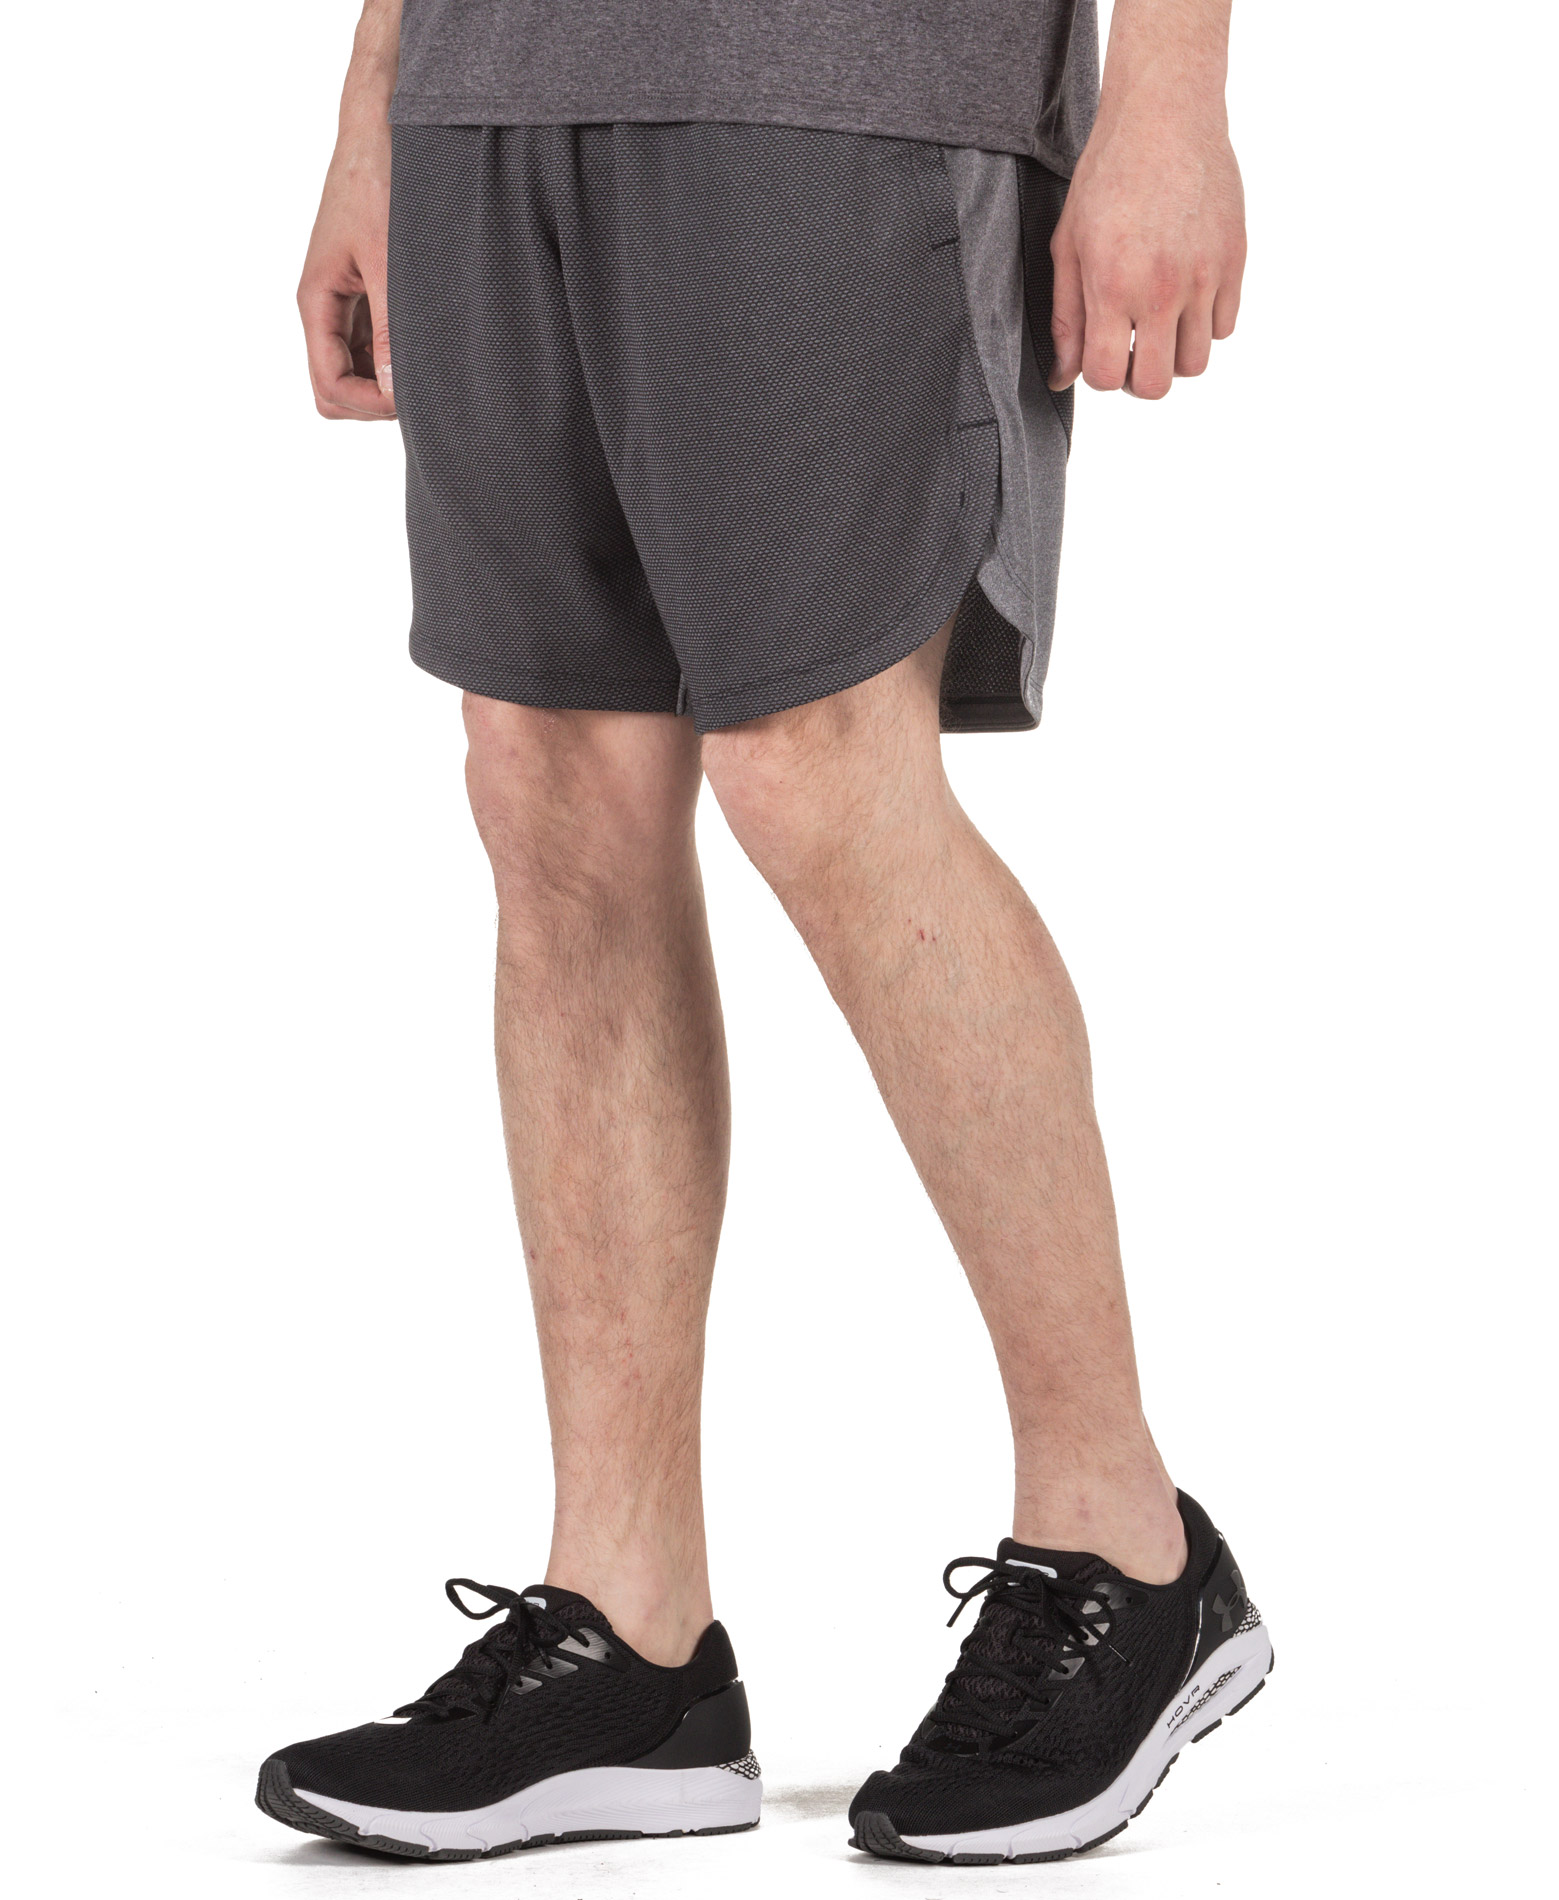 UNDER ARMOUR KNIT TRAINING SHORTS 1351641-001 Ανθρακί